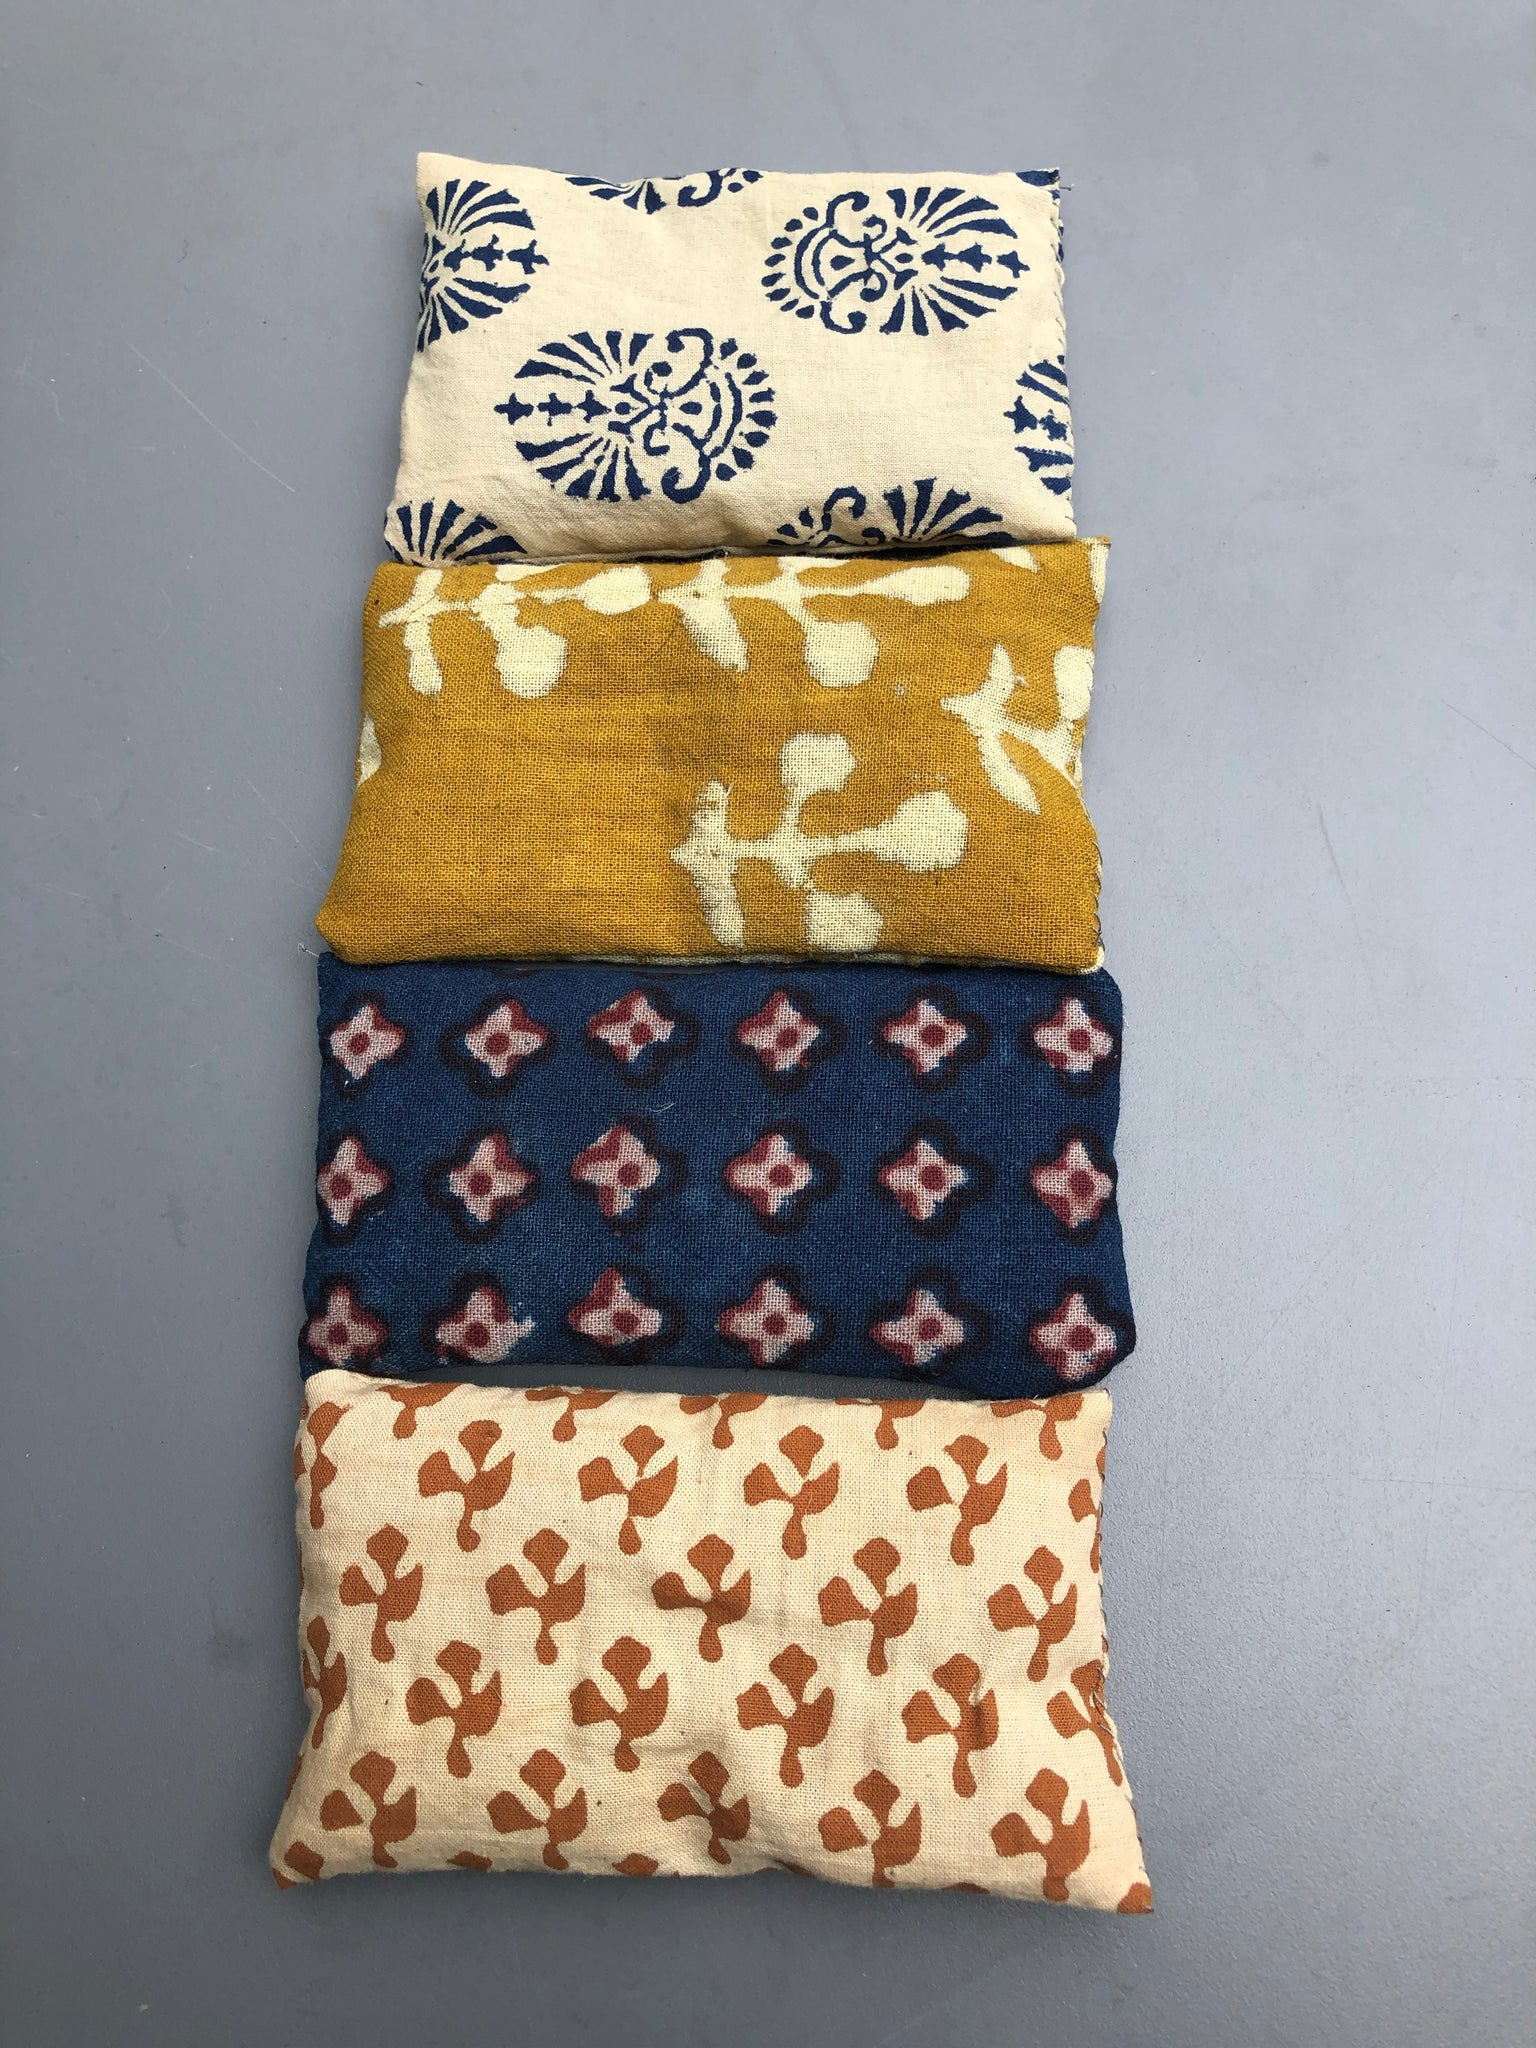 Lavender Bags - Indian Block Print fabrics